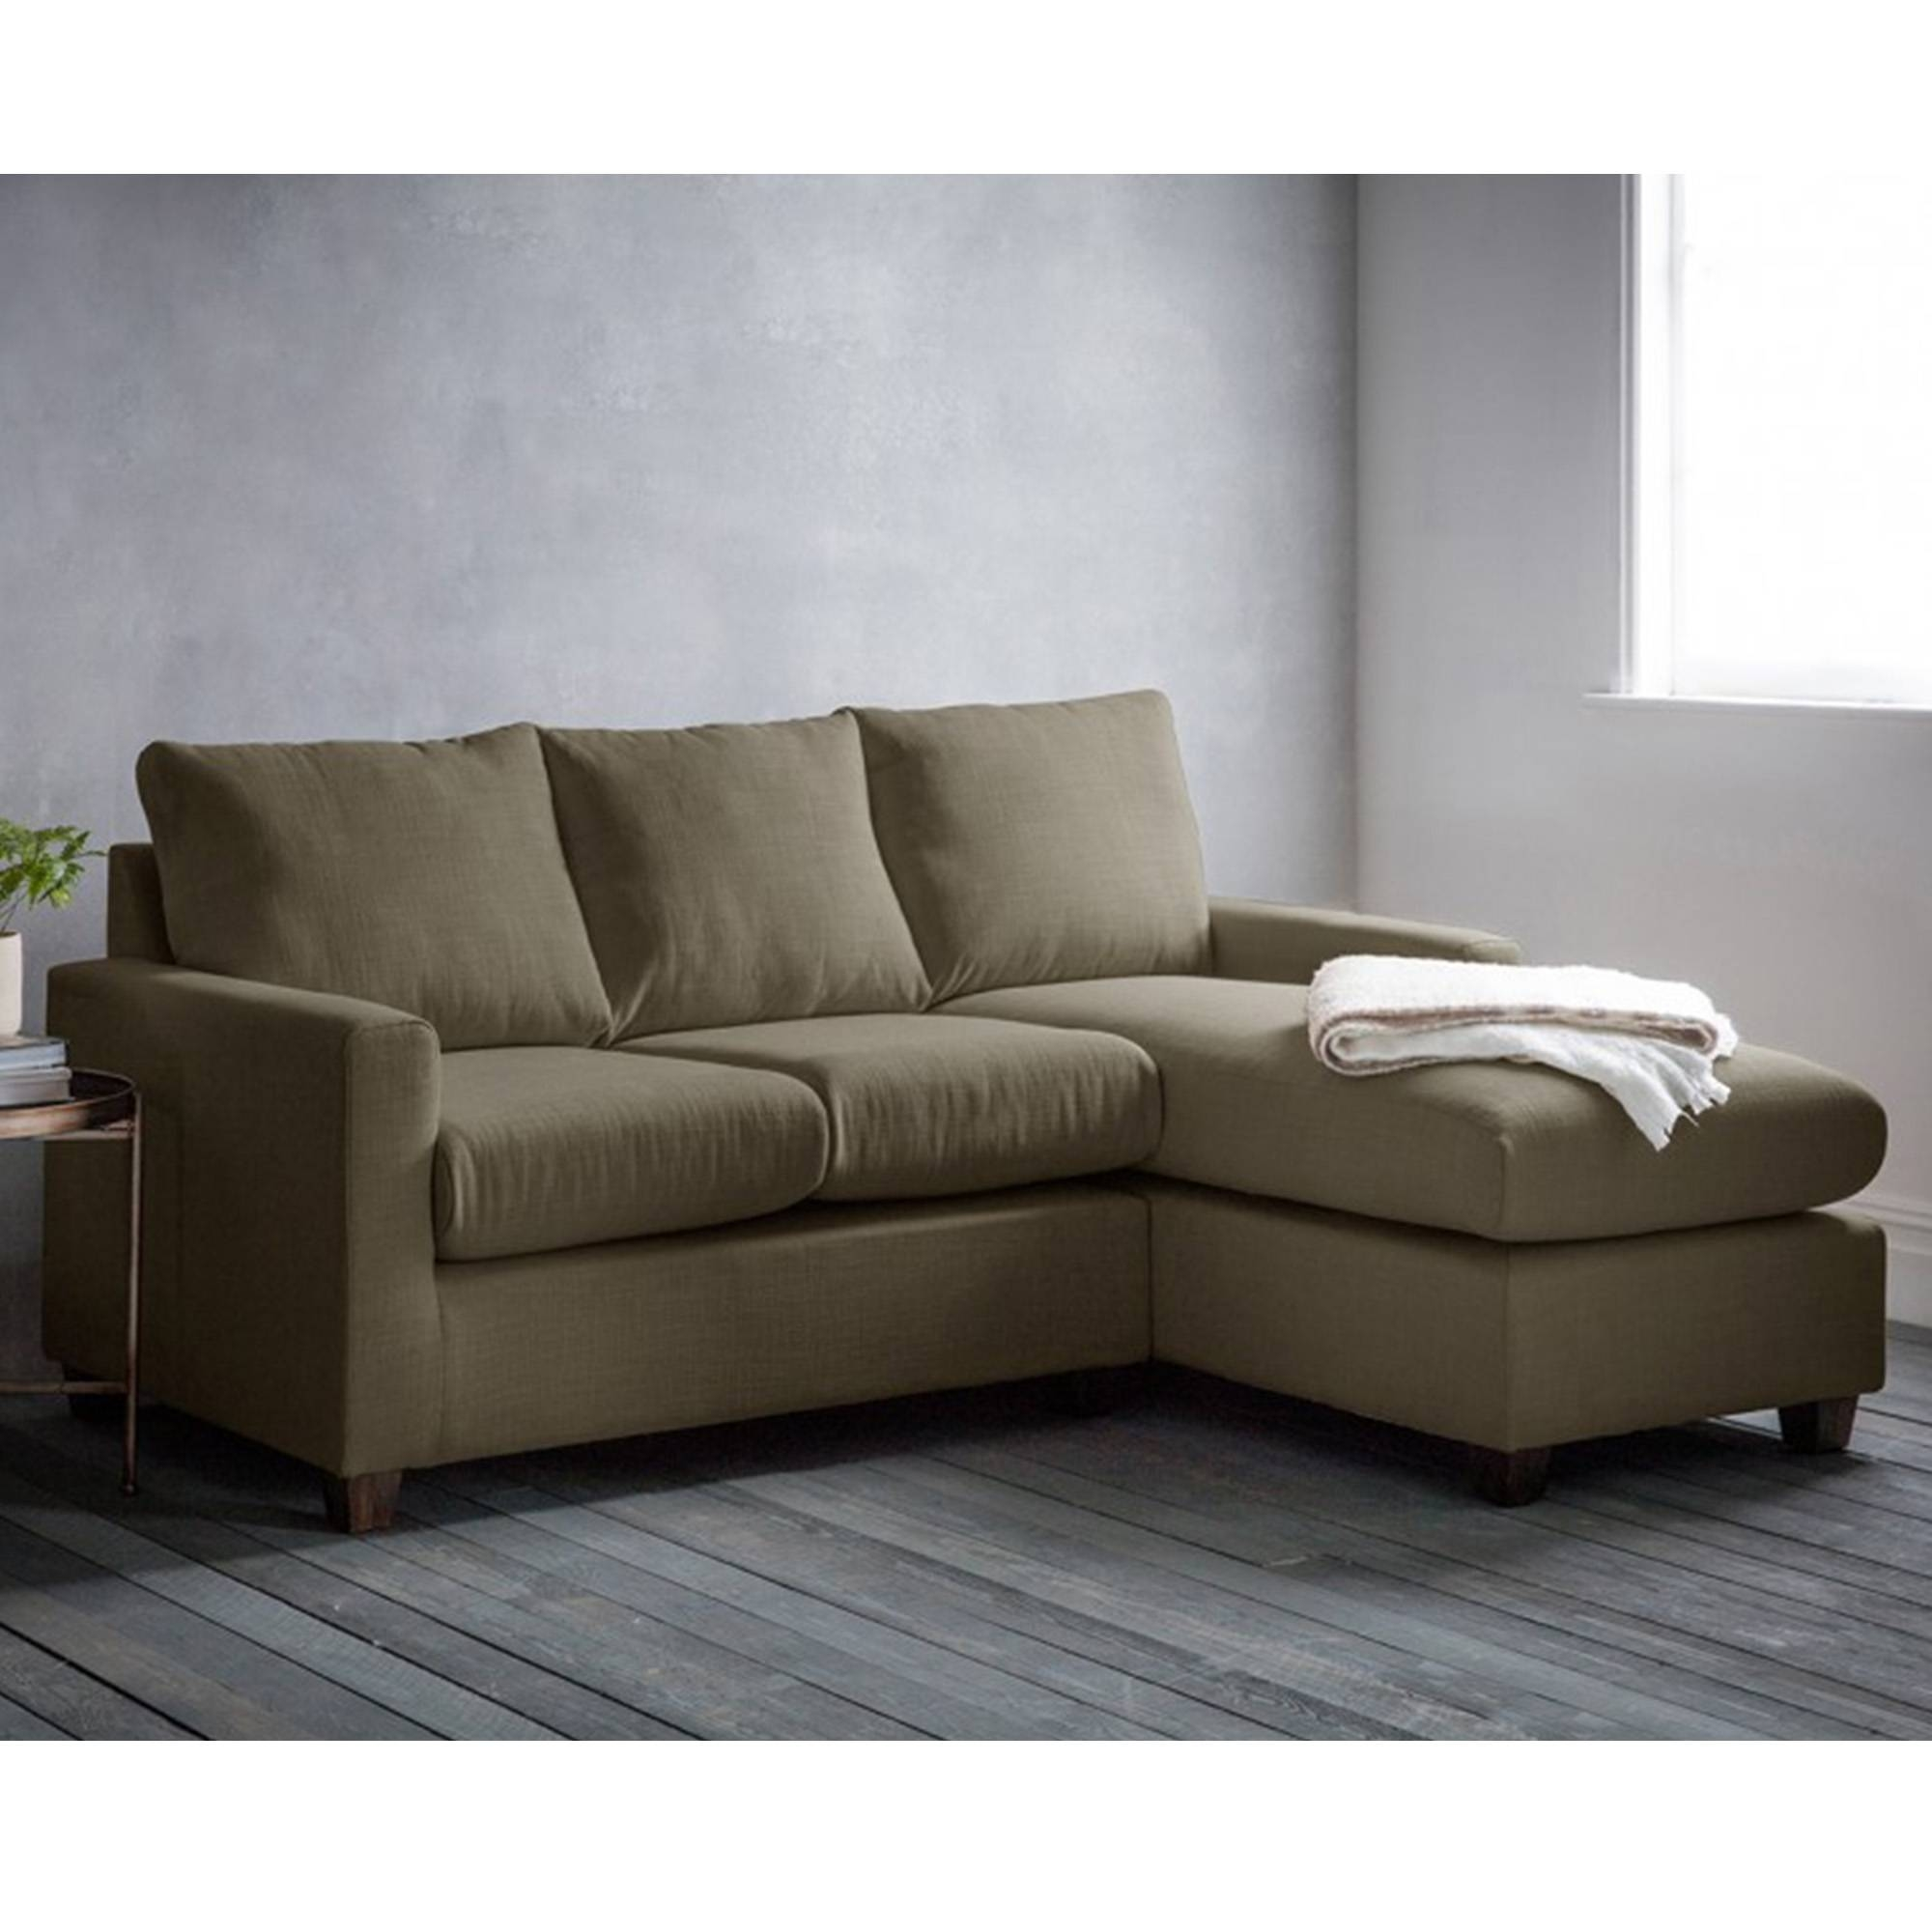 Field Army Stratford Lh Chaise Sofa | Seating Online From throughout Stratford Sofas (Image 8 of 30)